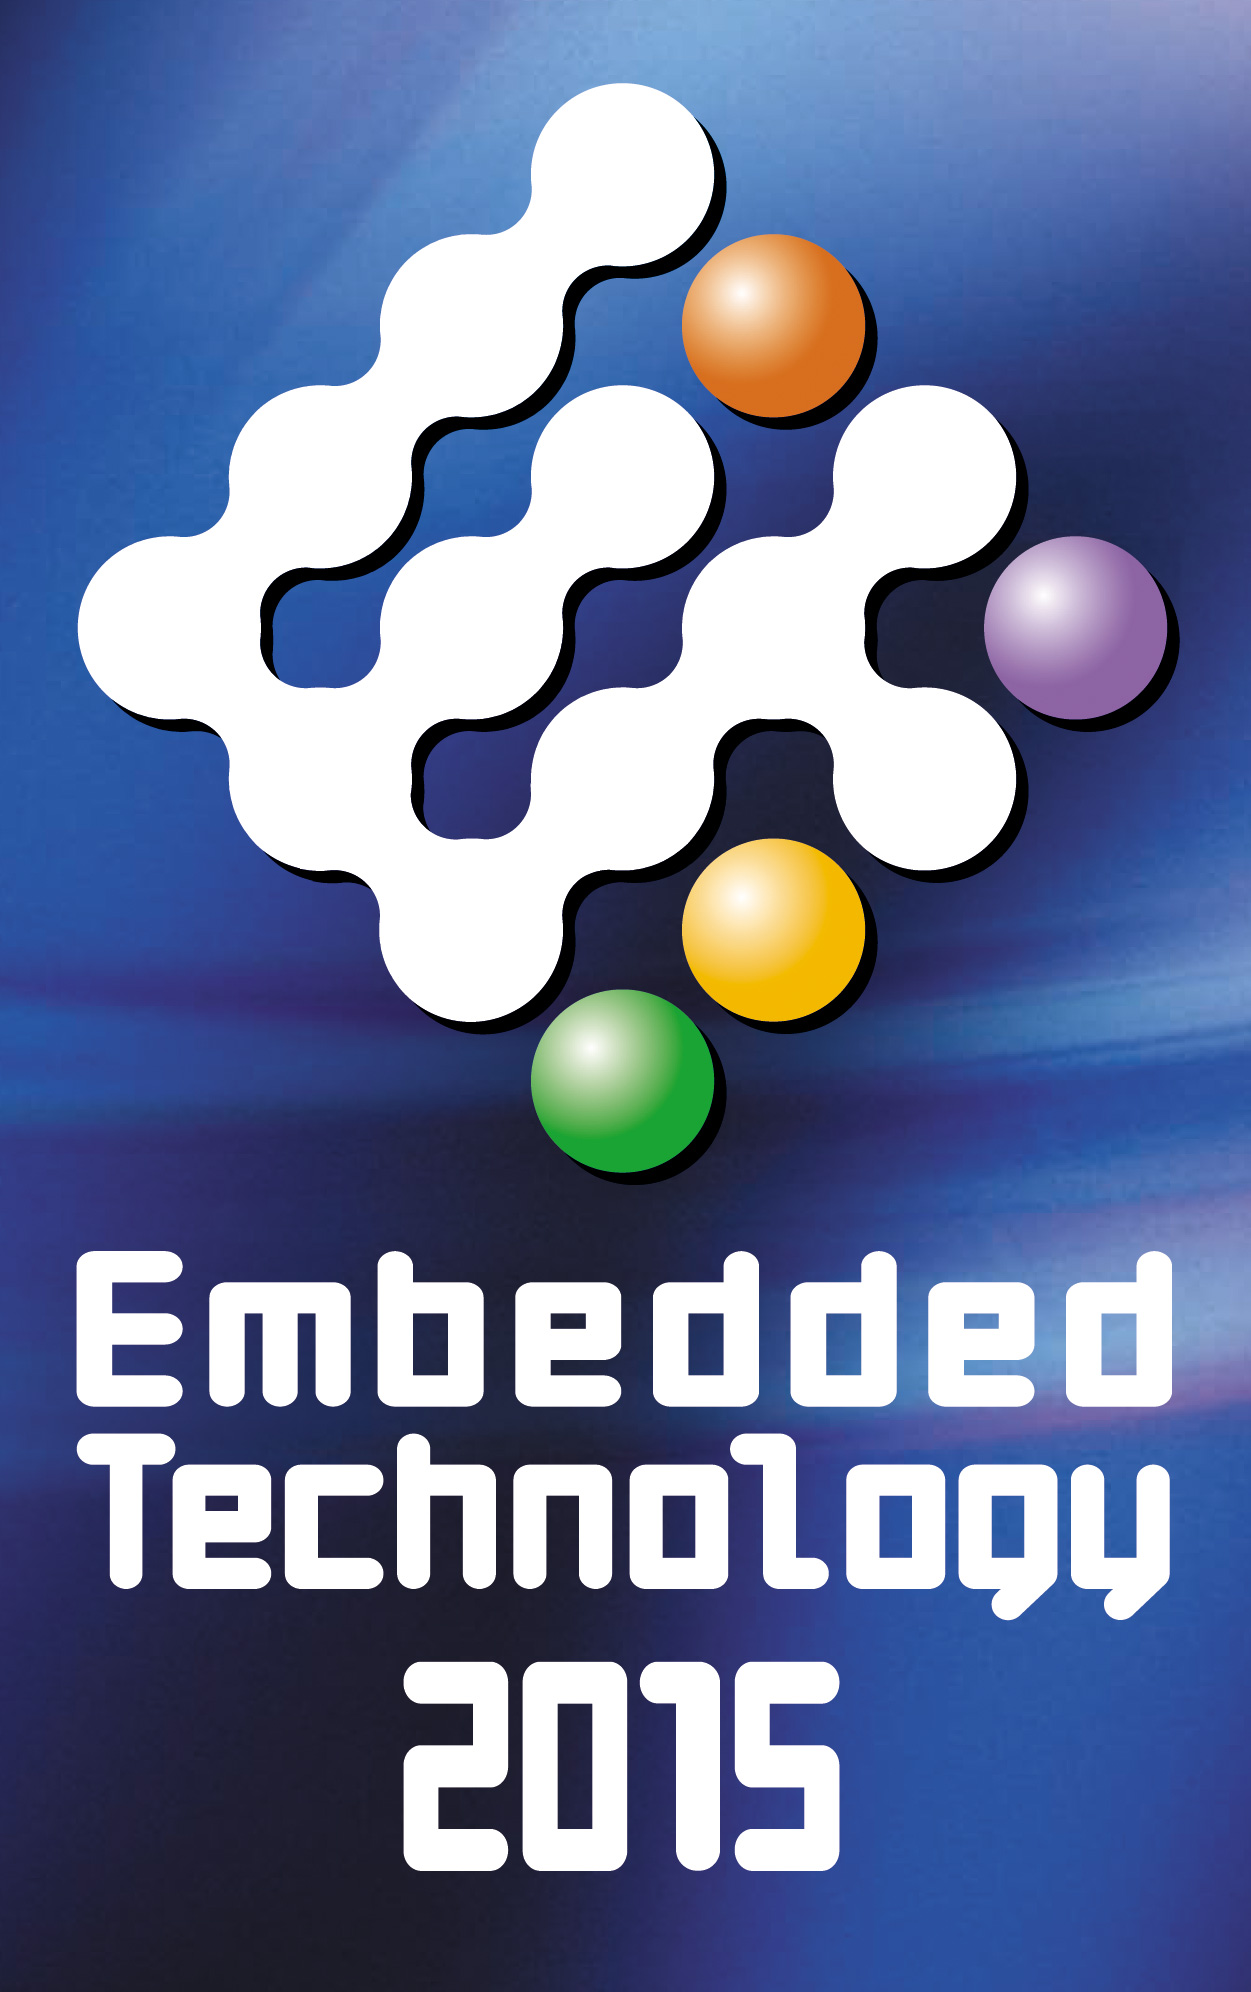 Embedded Technology2014